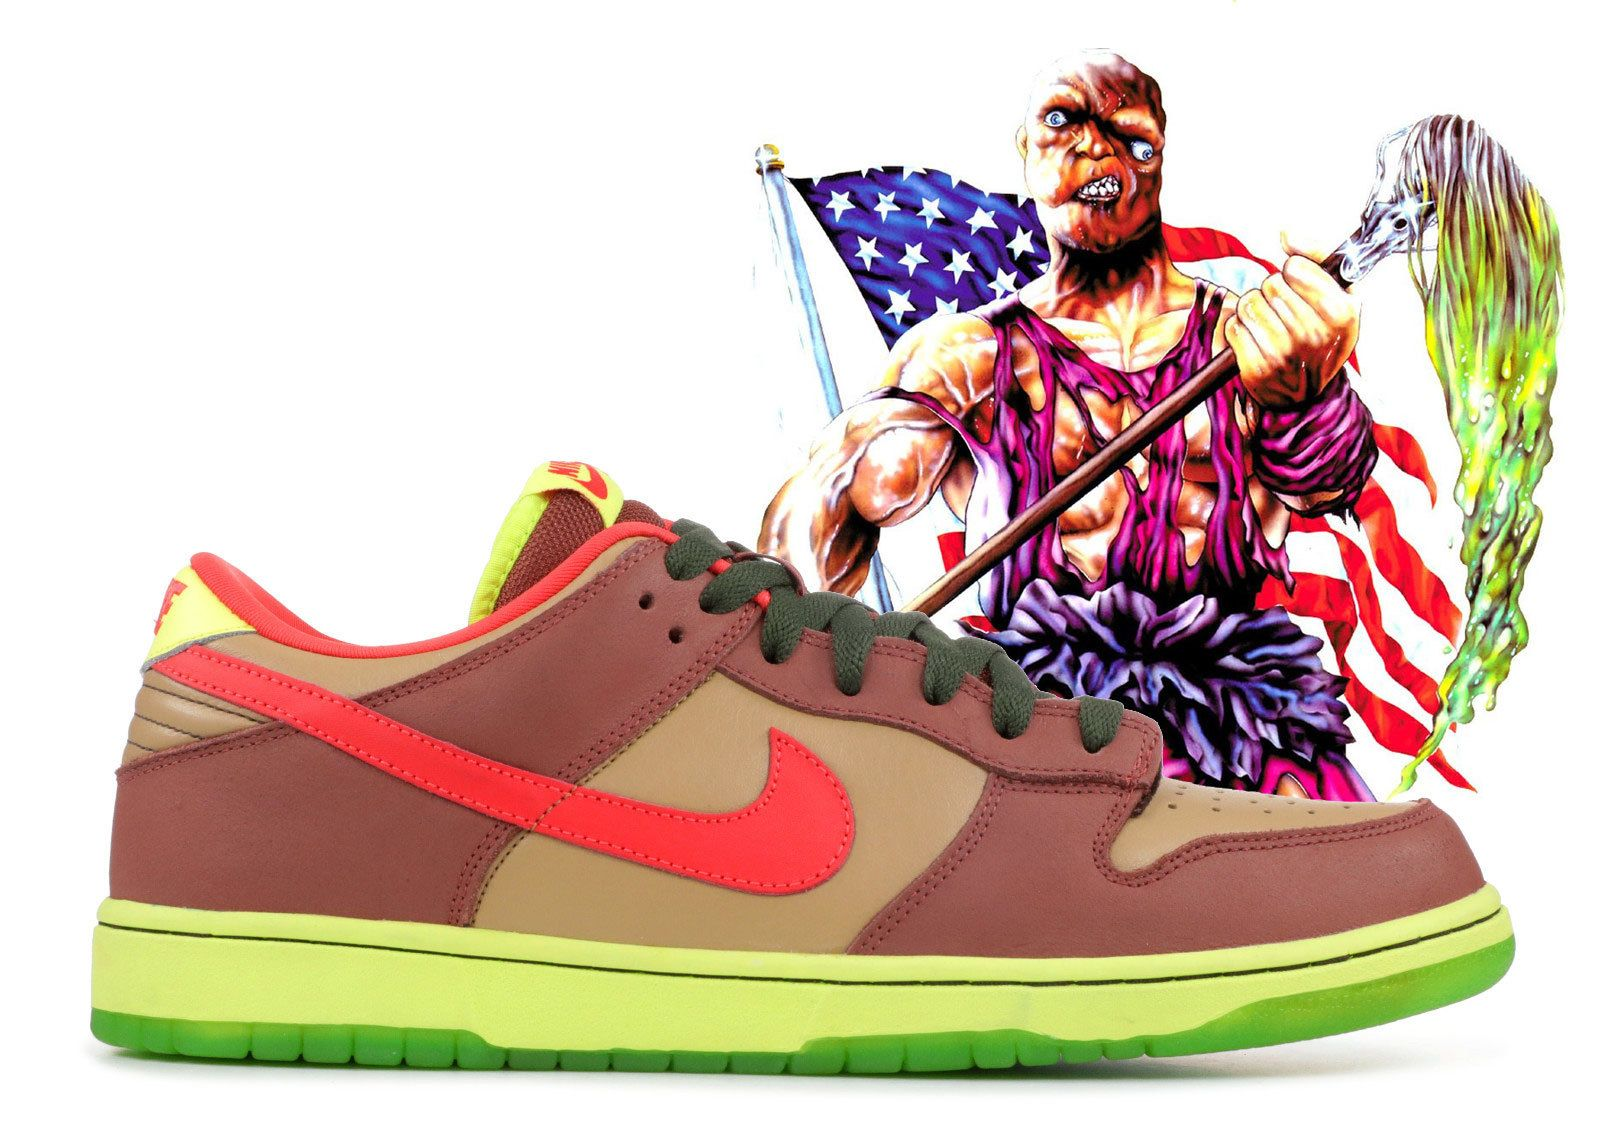 Nj Skate Shop X Nike Sb Dunk Low Toxic Avenger 2009